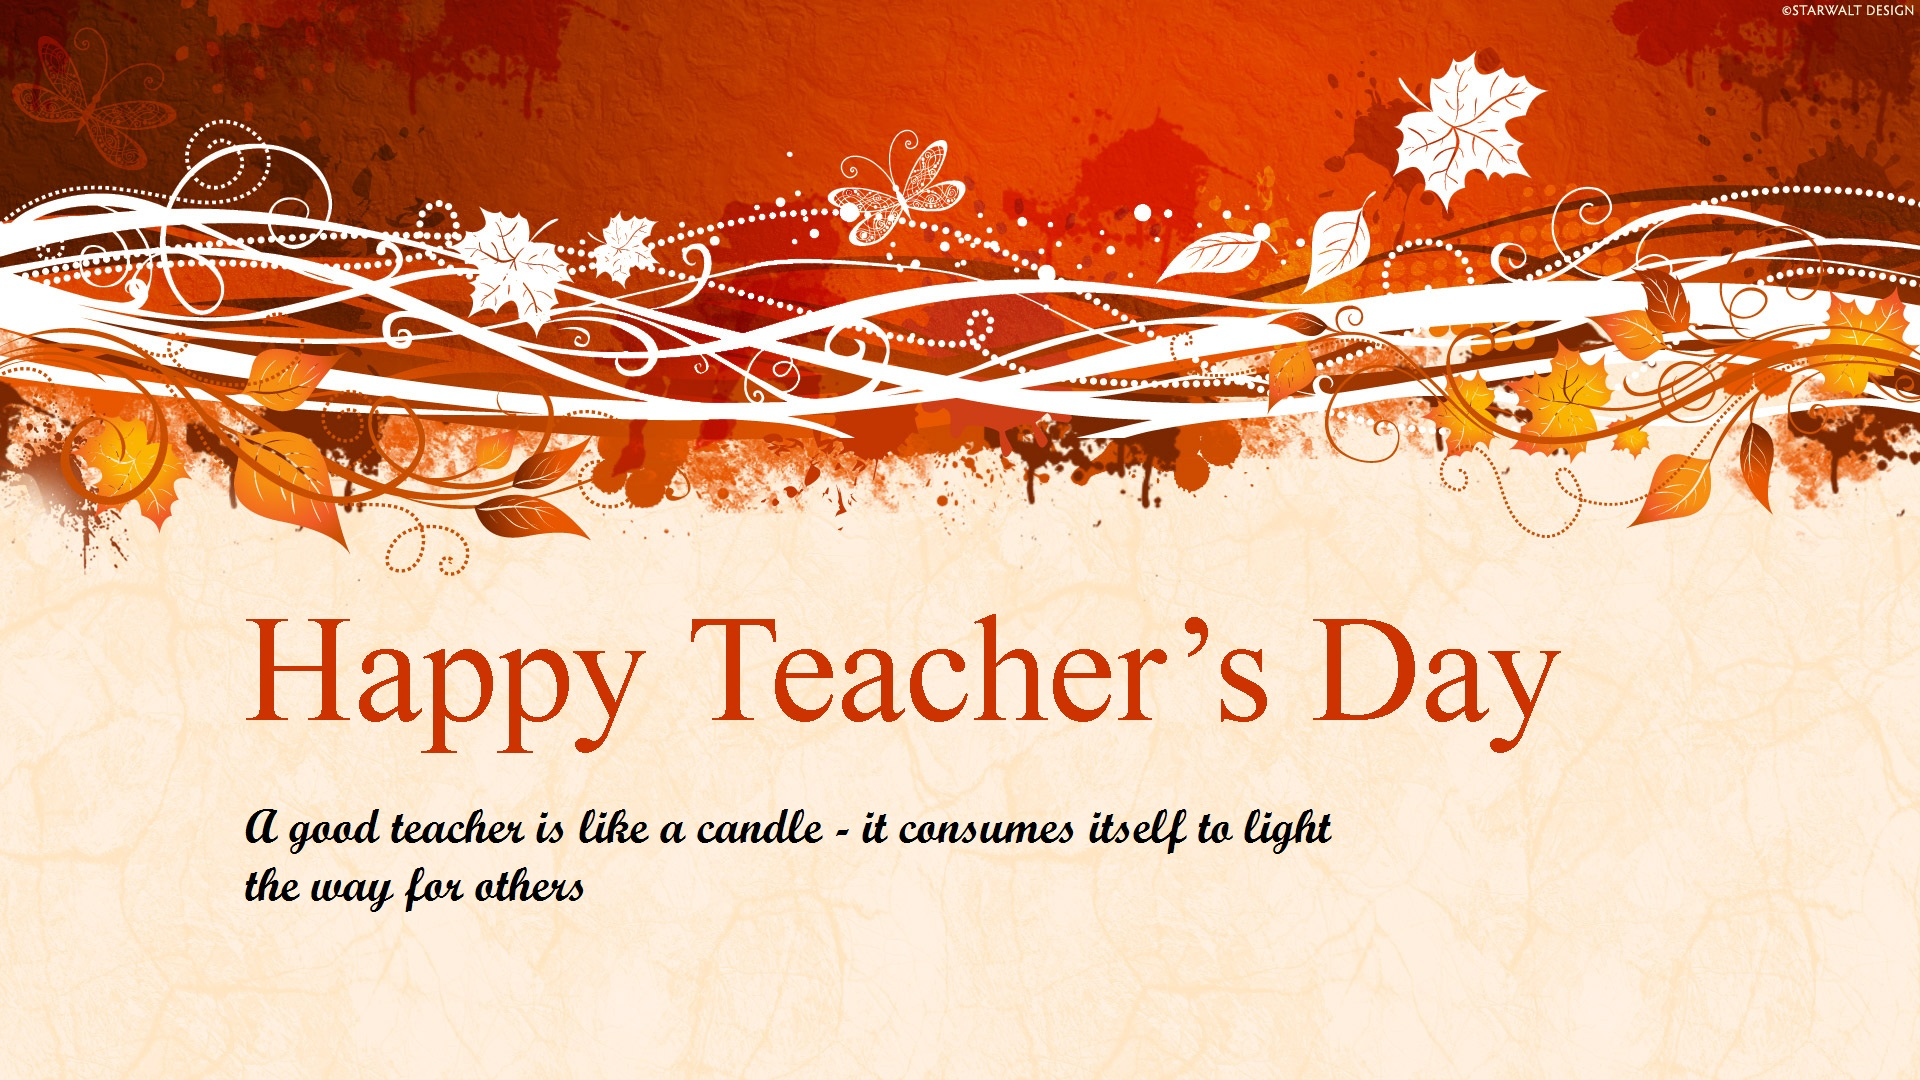 Teacher's Day 2019 HD Wallpaper